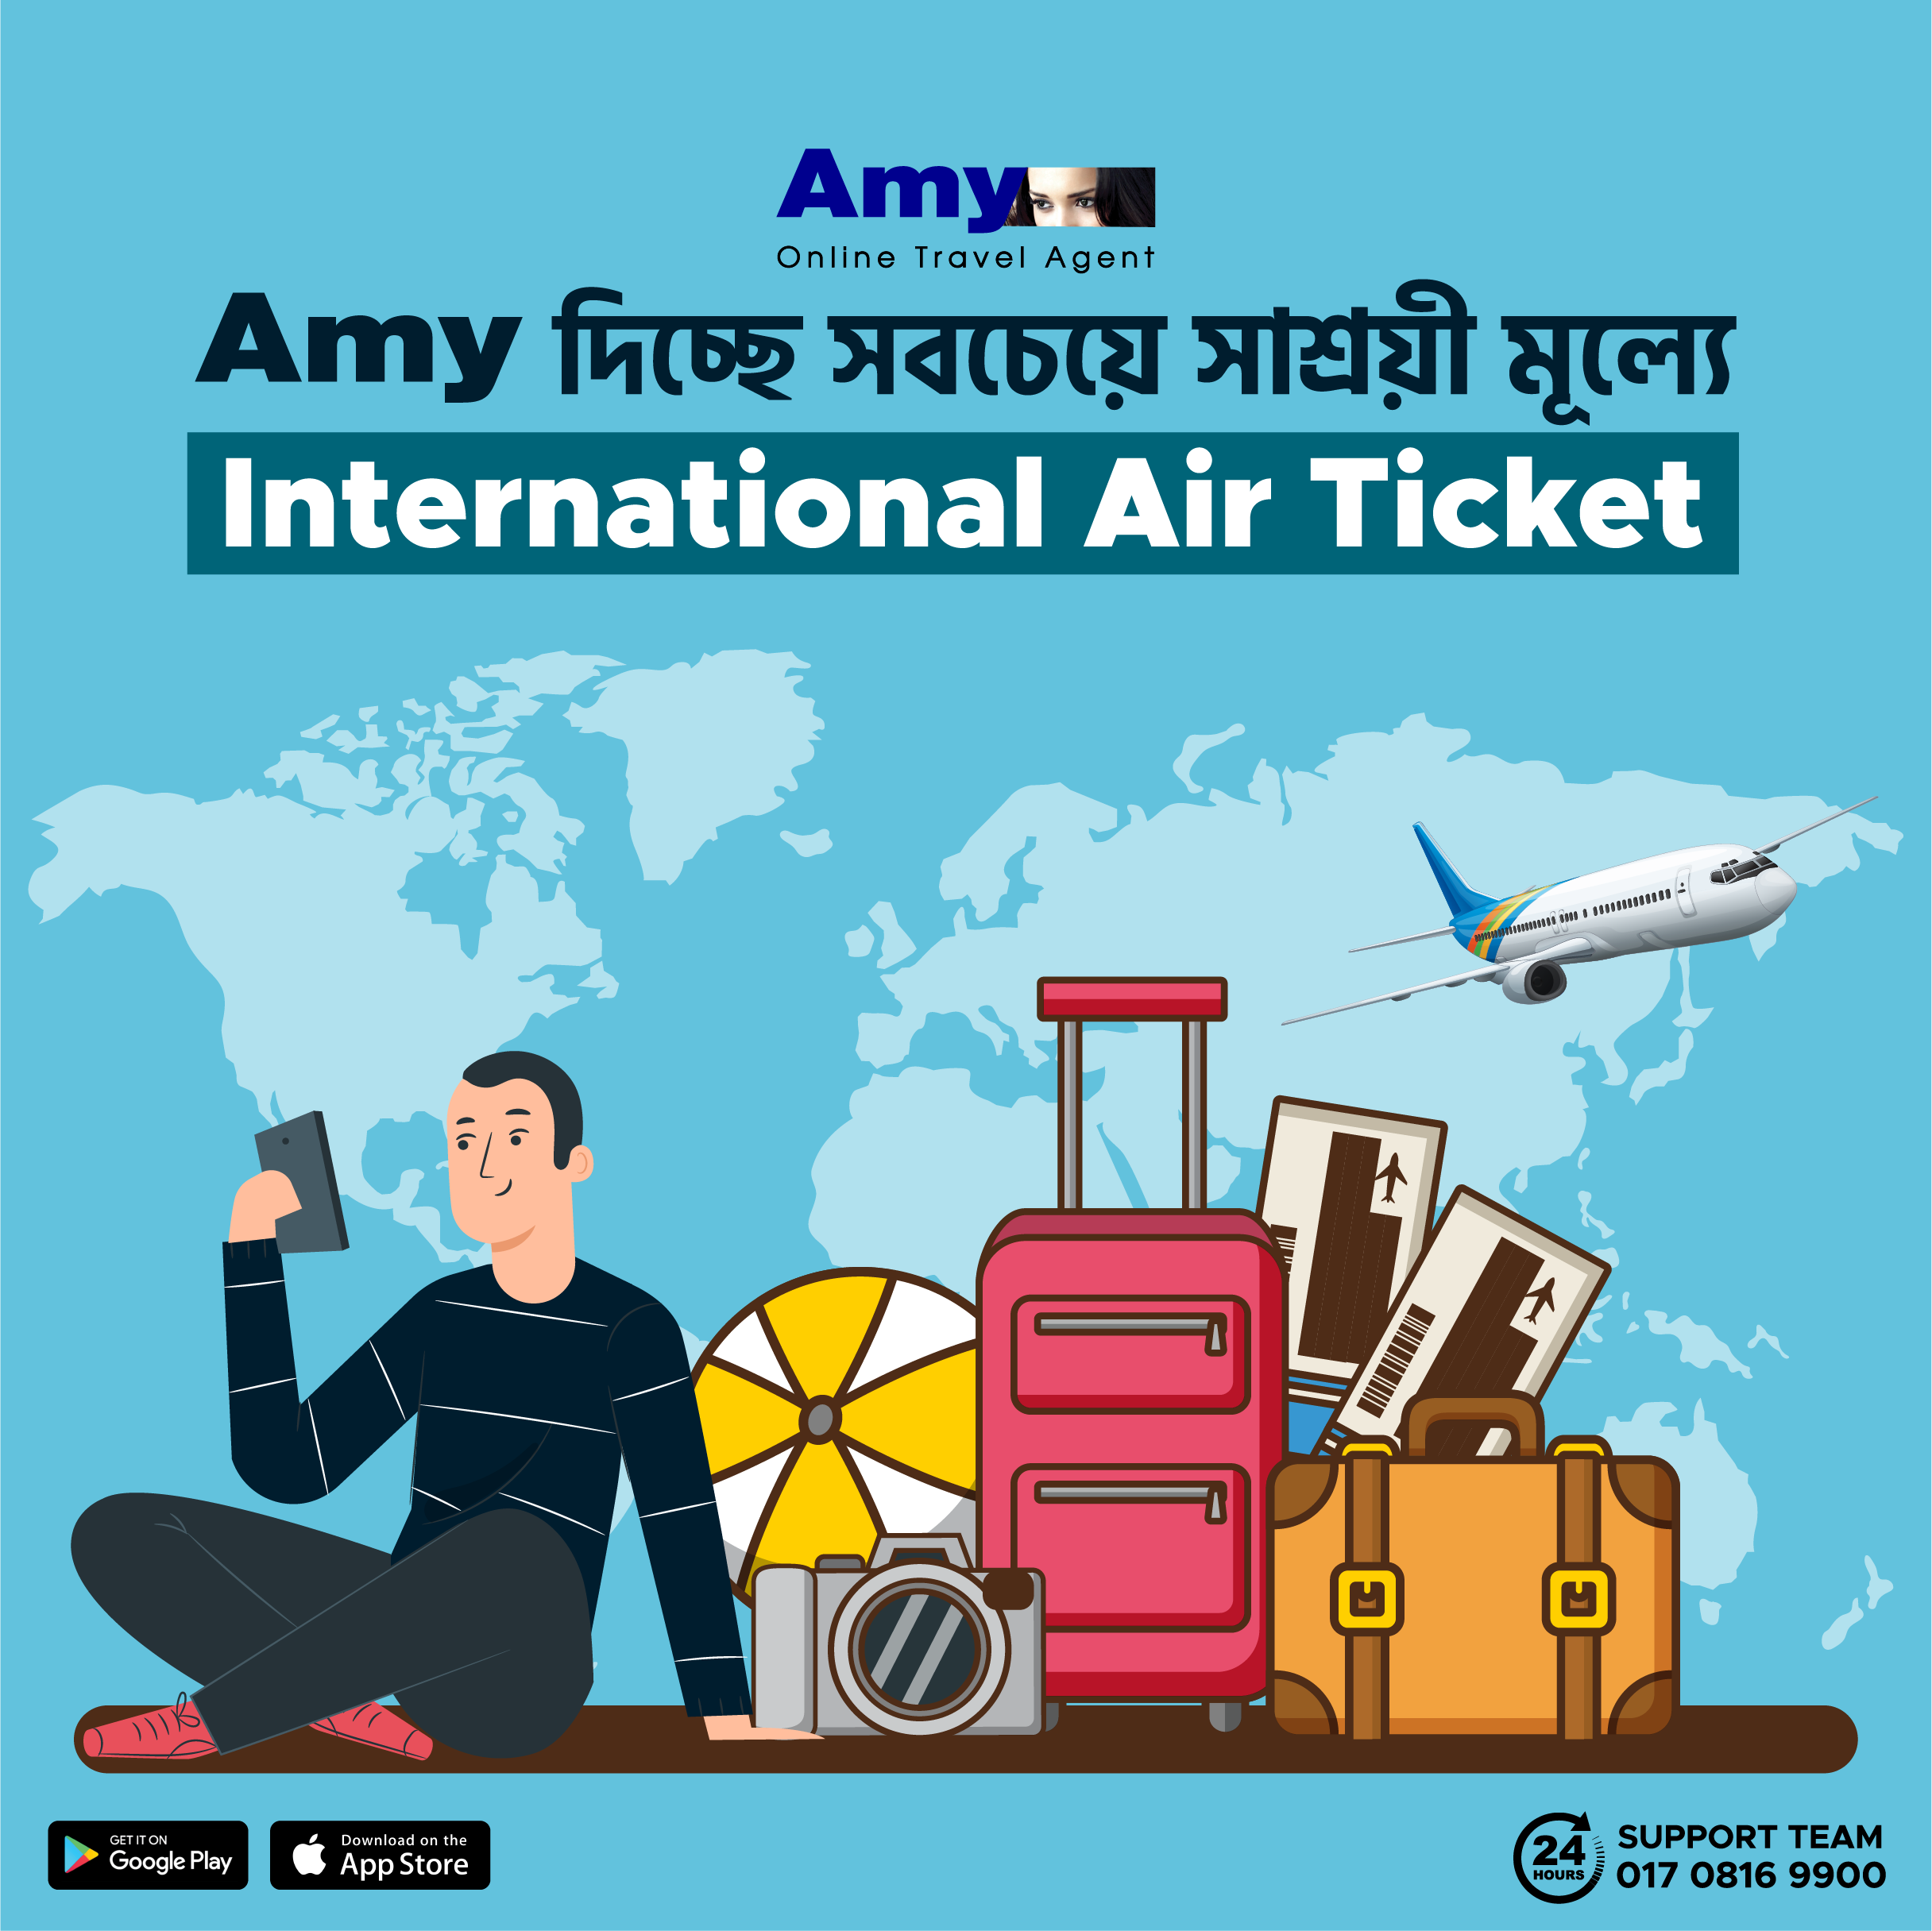 Amy - Country's Most Trusted & Dependable Online Travel Agent. ✈️  'Amy' provides all route international and domestic Air Ticketing solution anytime from any place with 24 hours non-stop customer support. Download Amy app from your Android Play Store/iOS App Store or visit our website today!  #AMY #OnlineTravelAgent #BookAirTicketOnline #AirTicket #BestFare #OneStopSolution #FlightTicket #OnlineTravelAgentInBangladesh